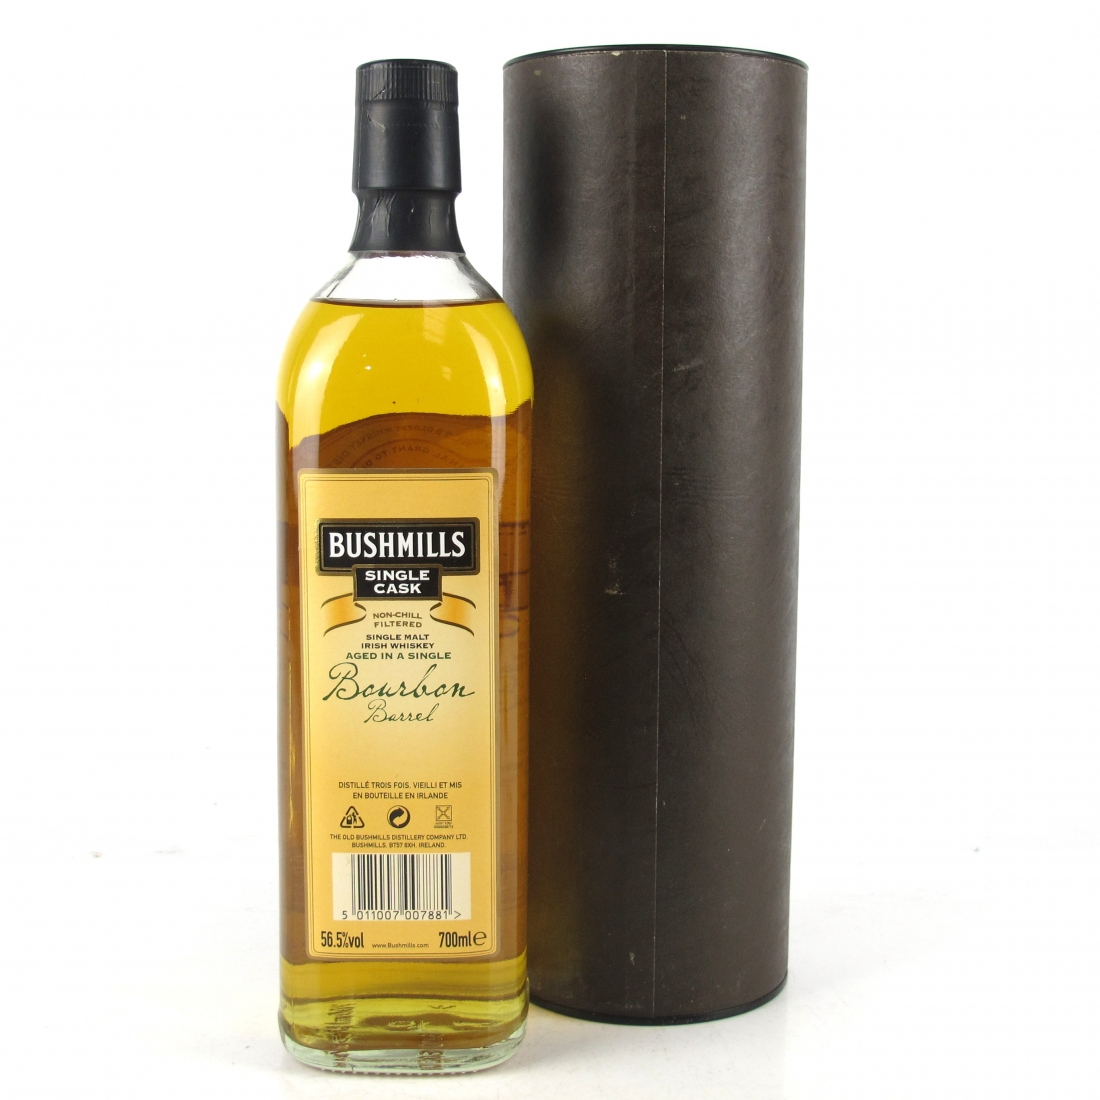 Bushmills 1989 Single Bourbon Cask / Copenicker Whisky-Herbst 2004